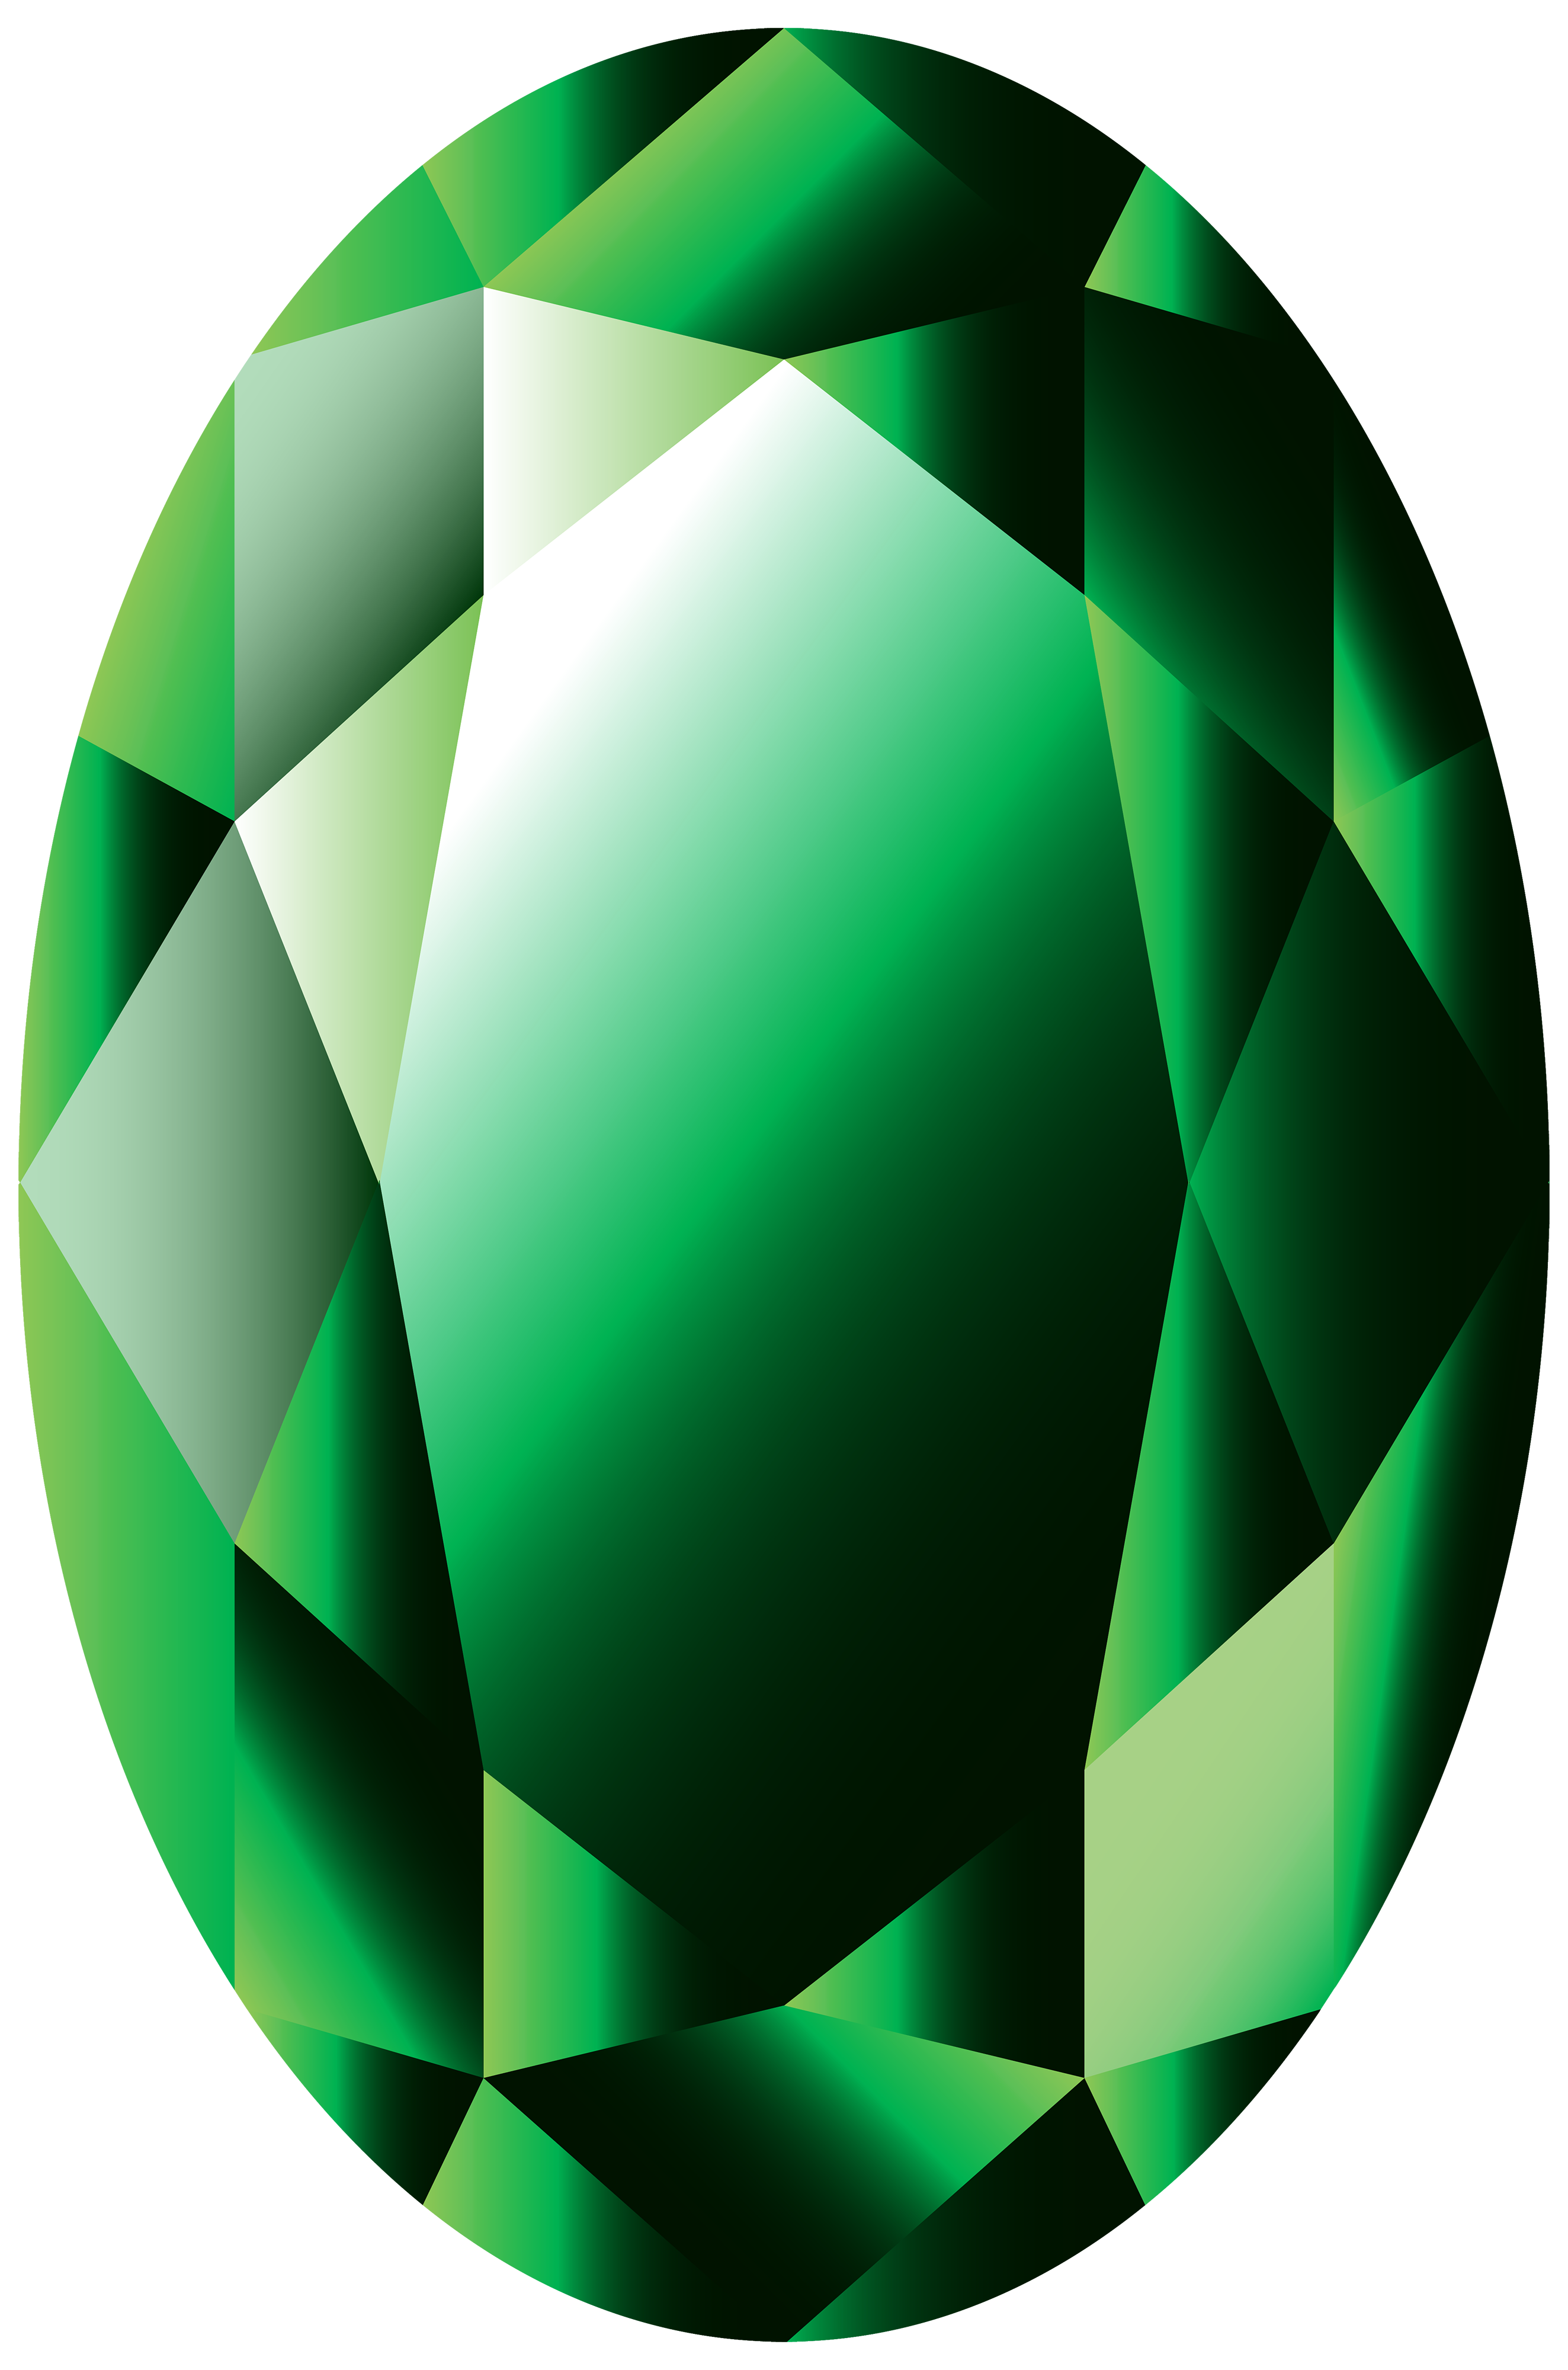 Website clipart green computer. Oval emerald png image